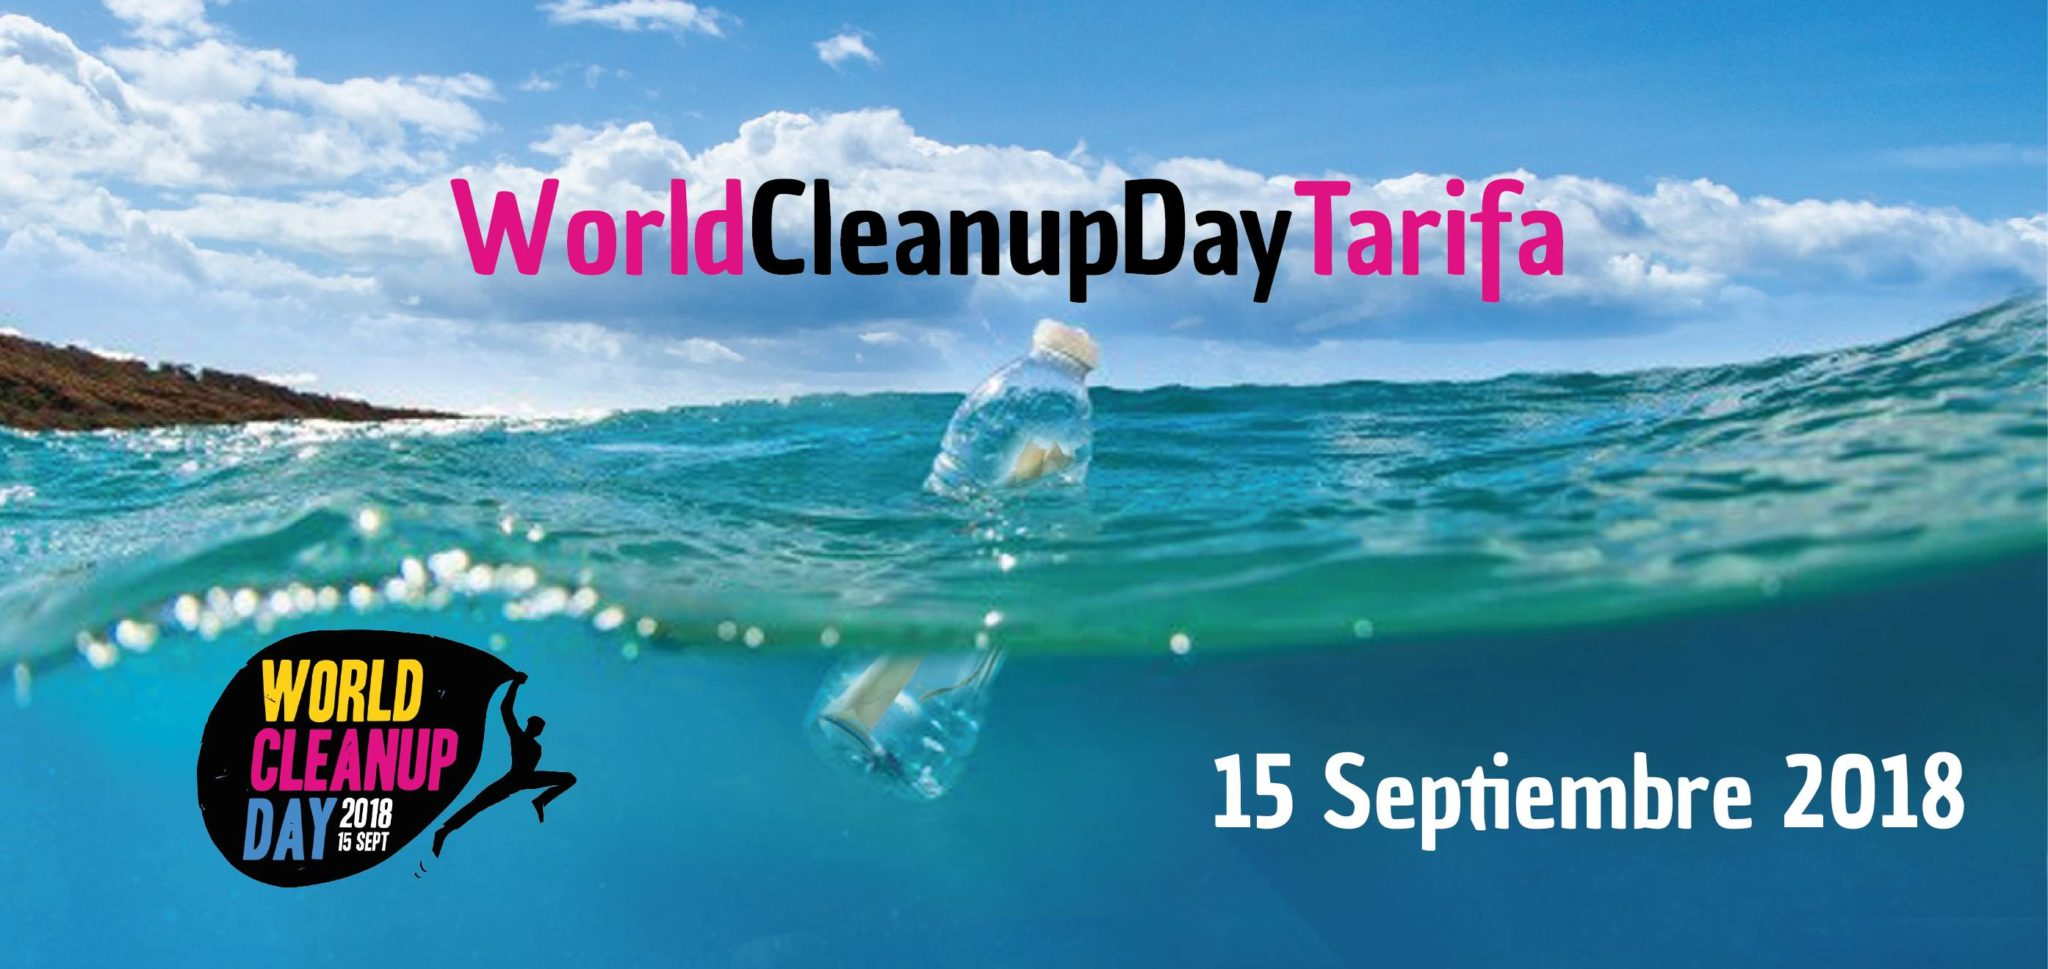 World Cleanup Day Tarifa